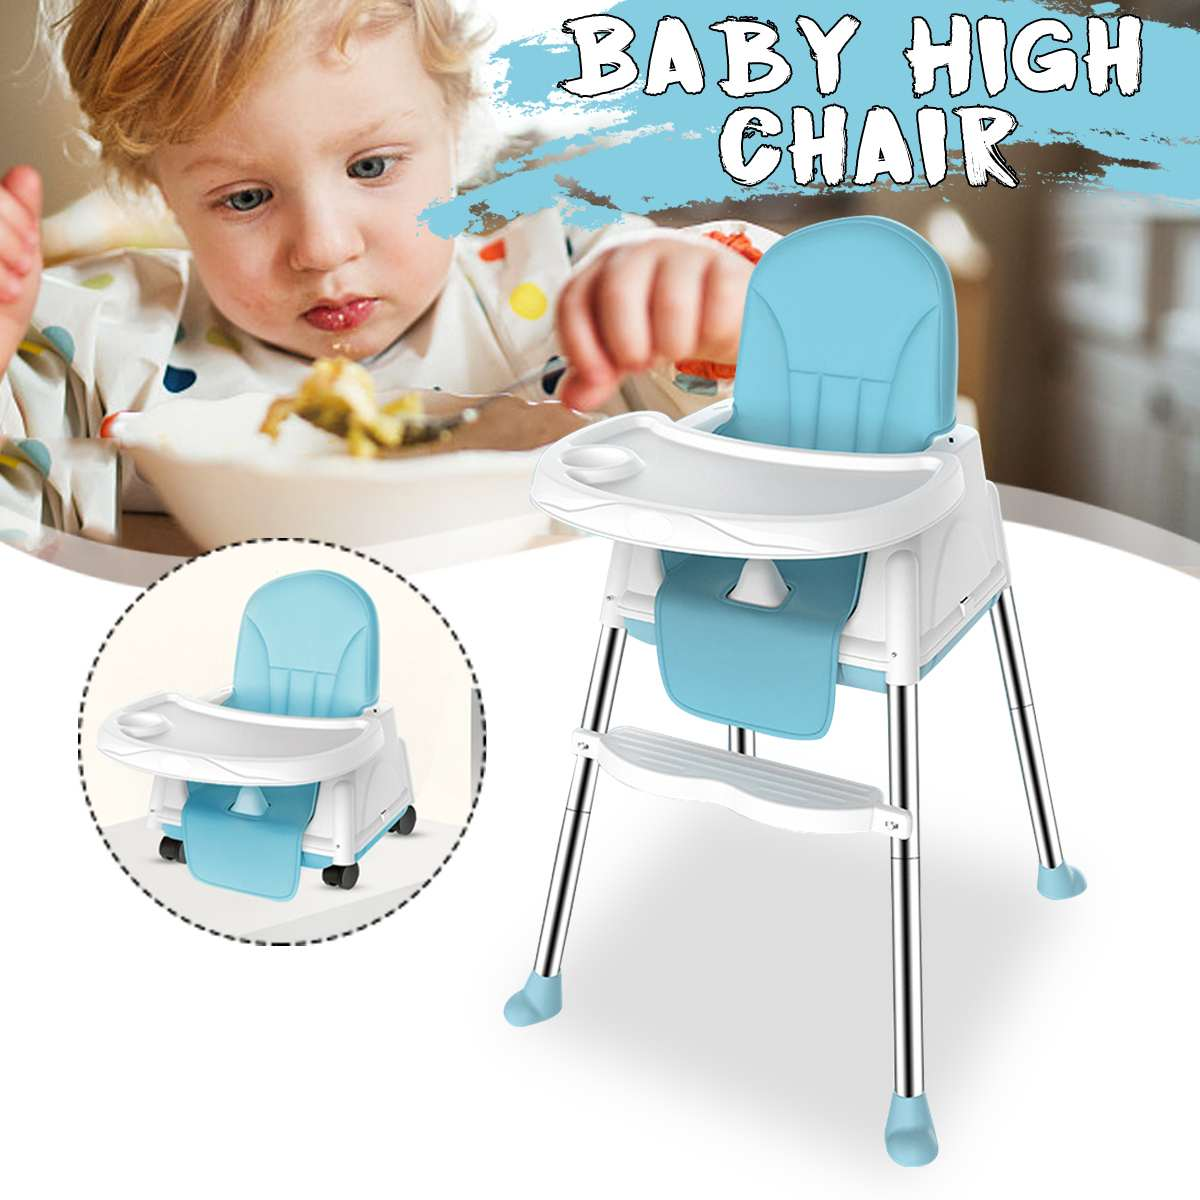 Multifunctional Baby High Chair Adjustable Kids Safety Dining High Chair Booster with Seat Wheels Cushion Foldable Baby Chair